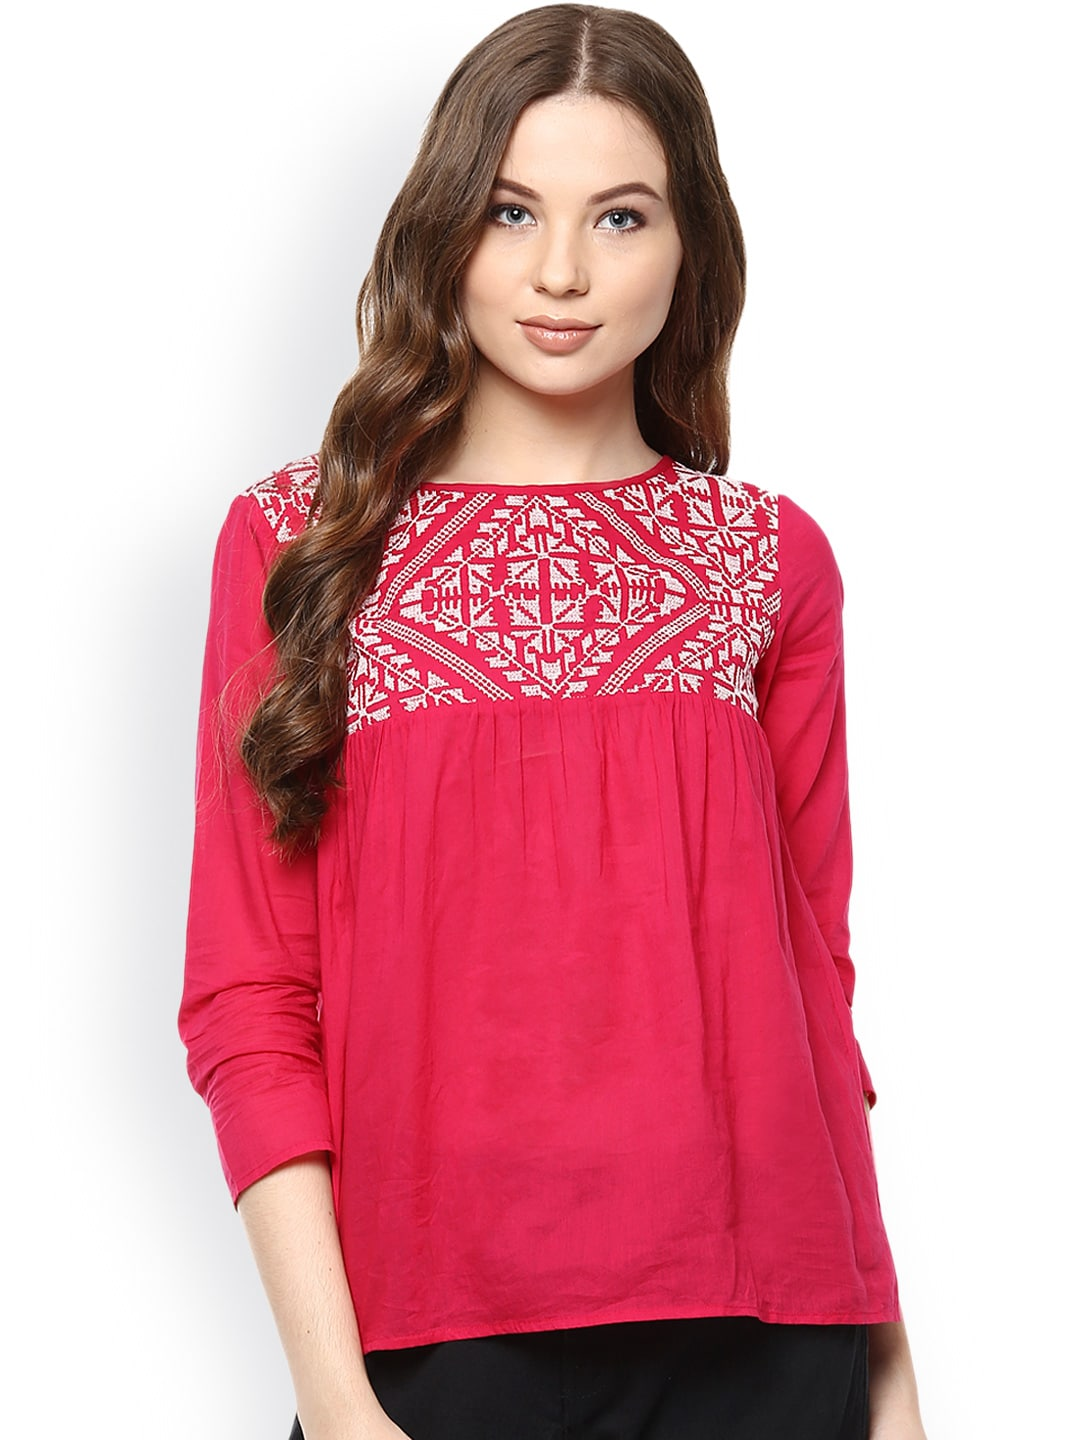 4b497b7c2e977f Women Pink Tops - Buy Women Pink Tops online in India